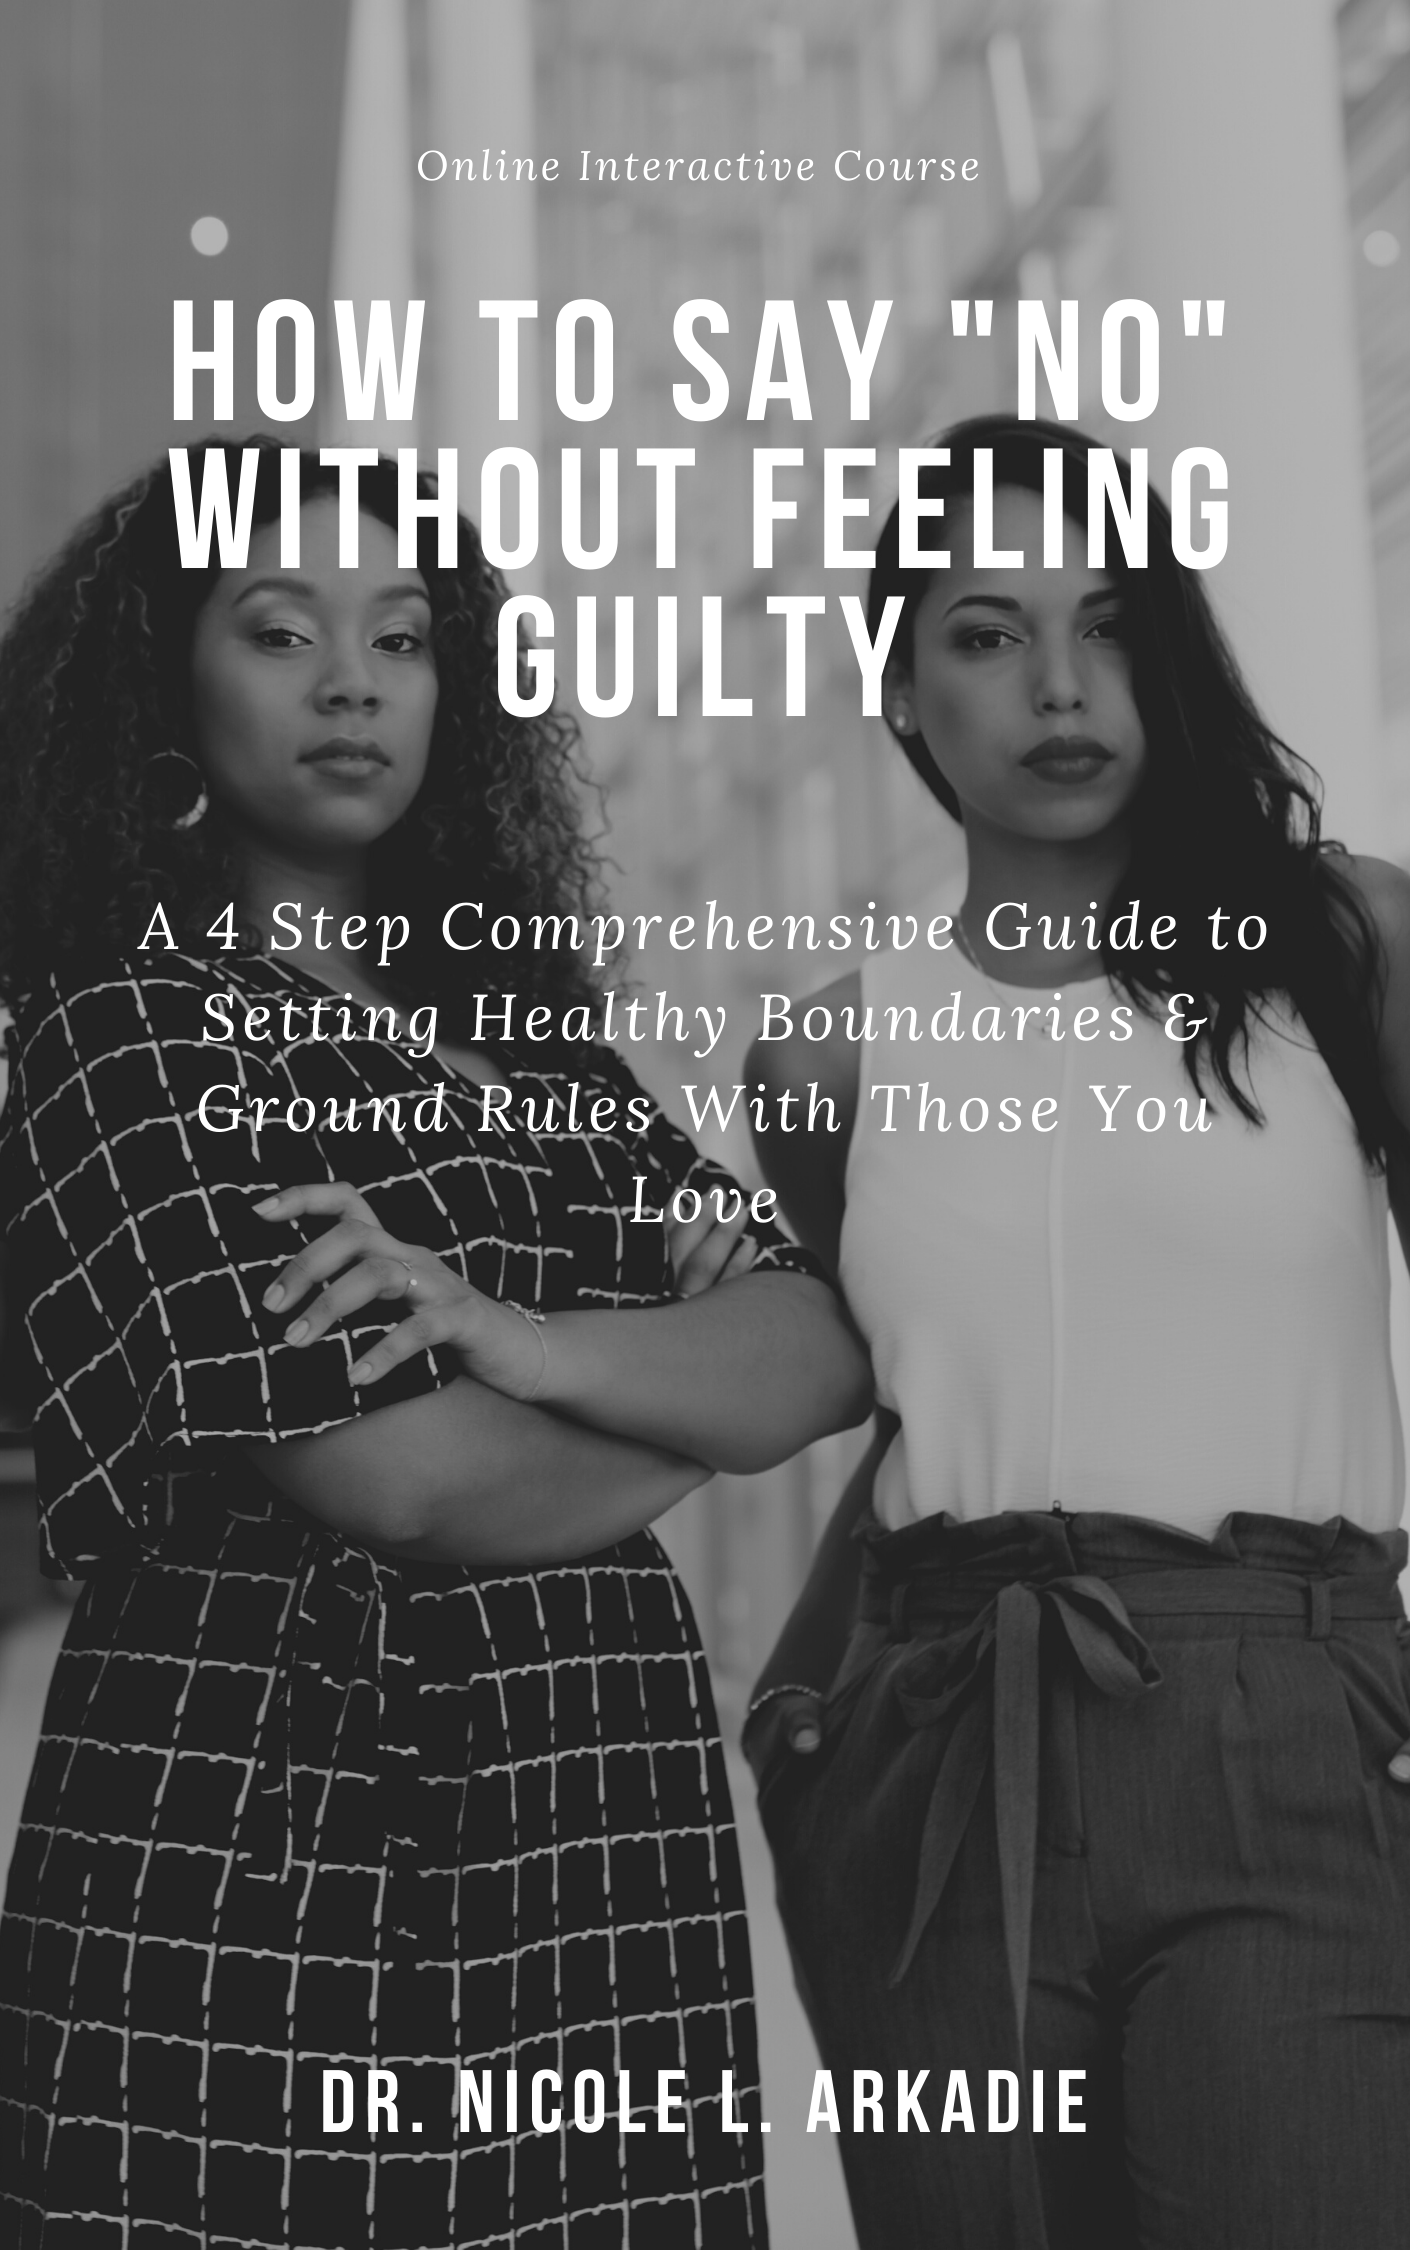 Online course how to say no without feeling guilty